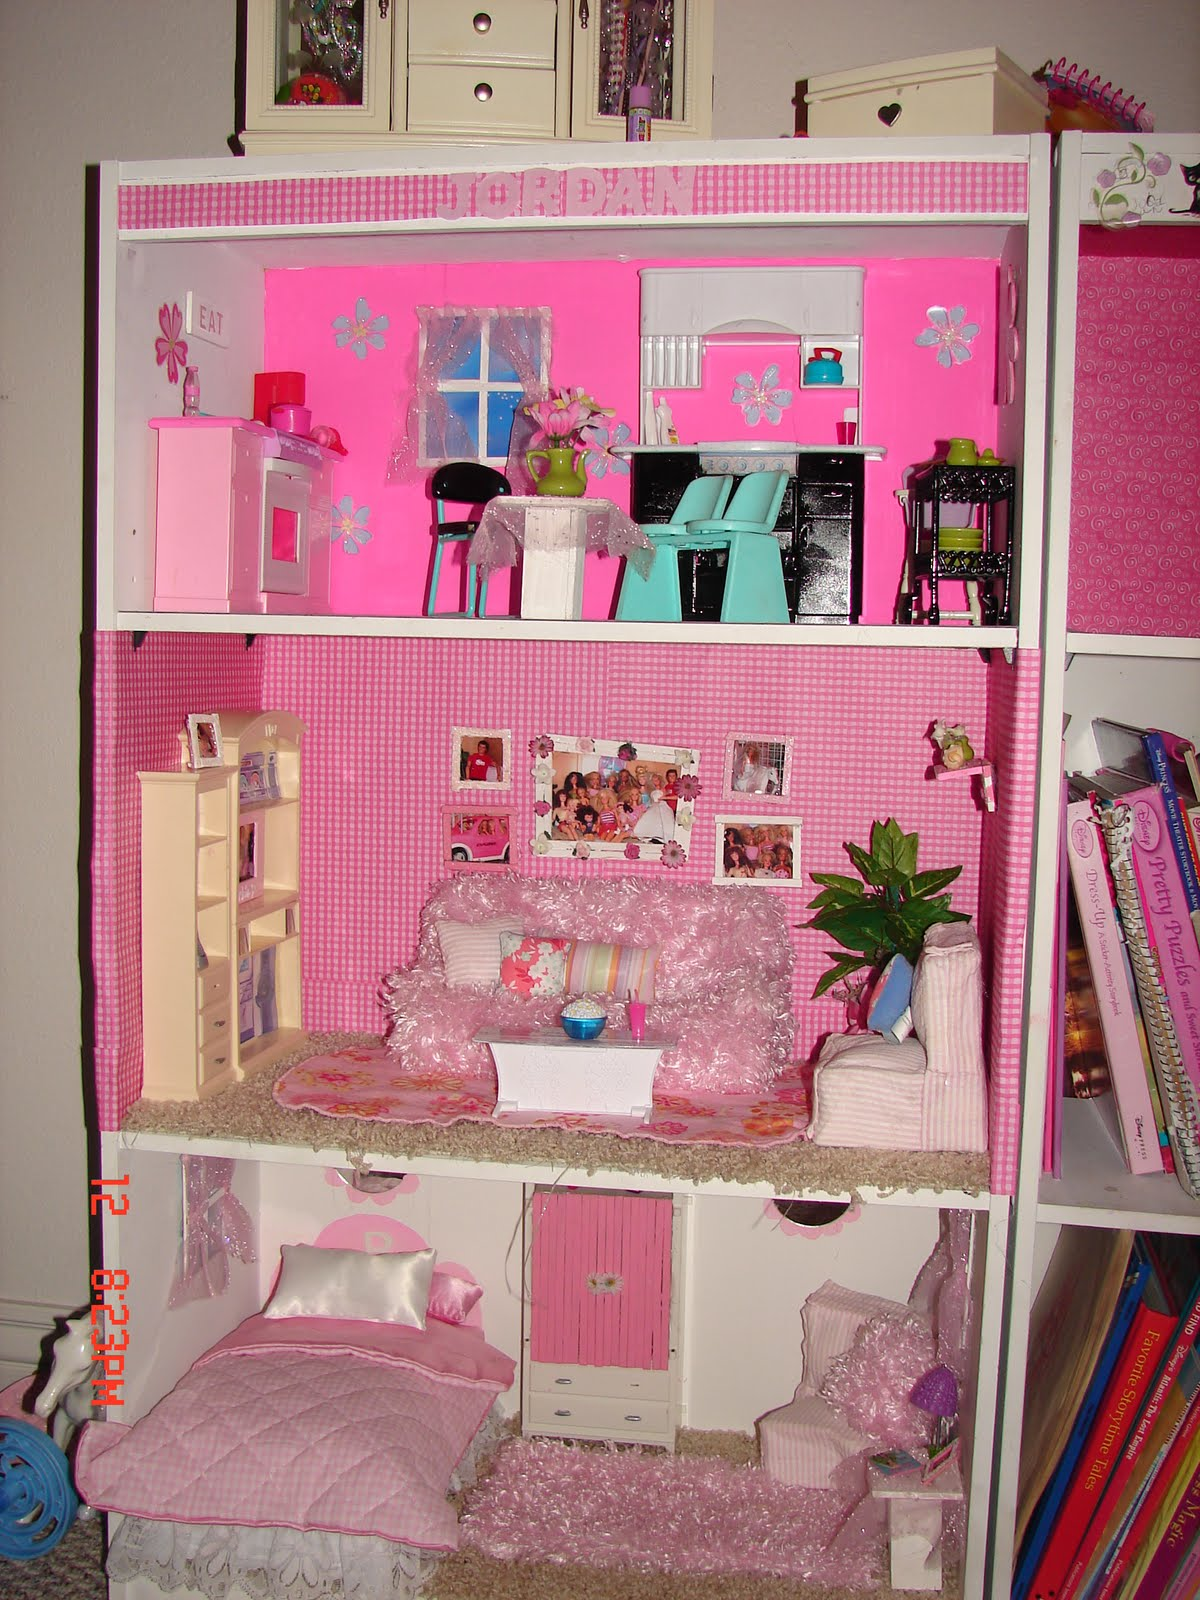 Princess house coloring games - Barbie Doll House Wallpaper Cake Princess House Images Body Girl Pics